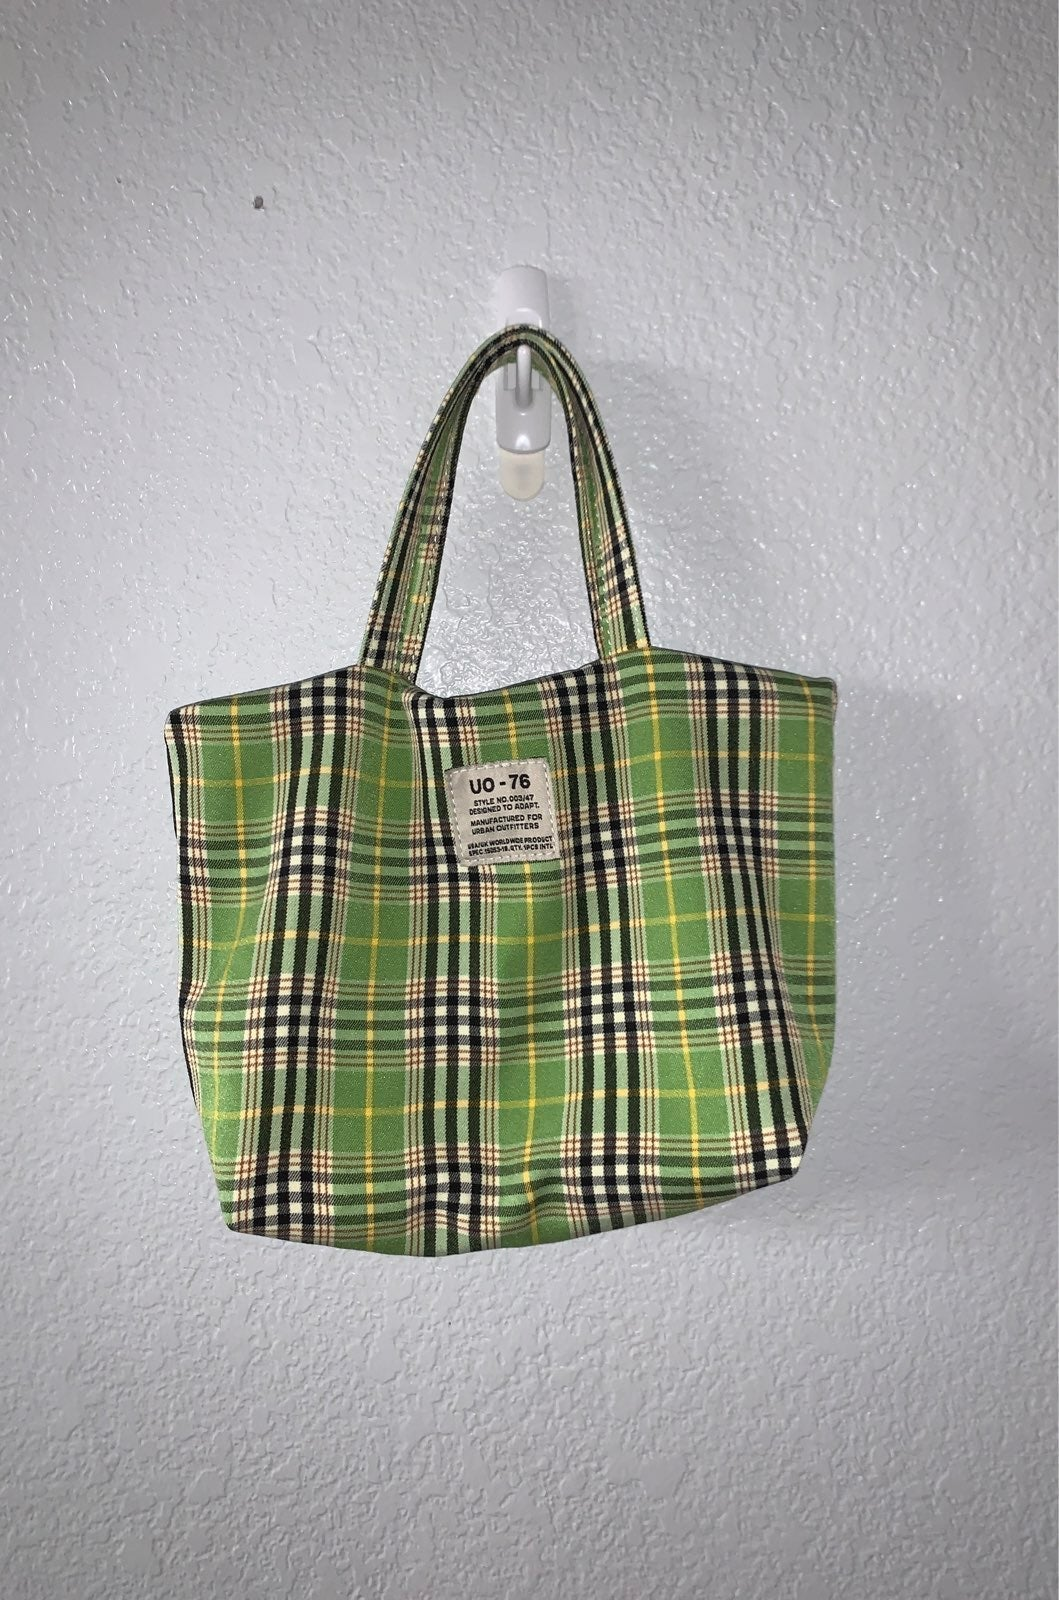 Urban Outfitters Green Plaid Purse